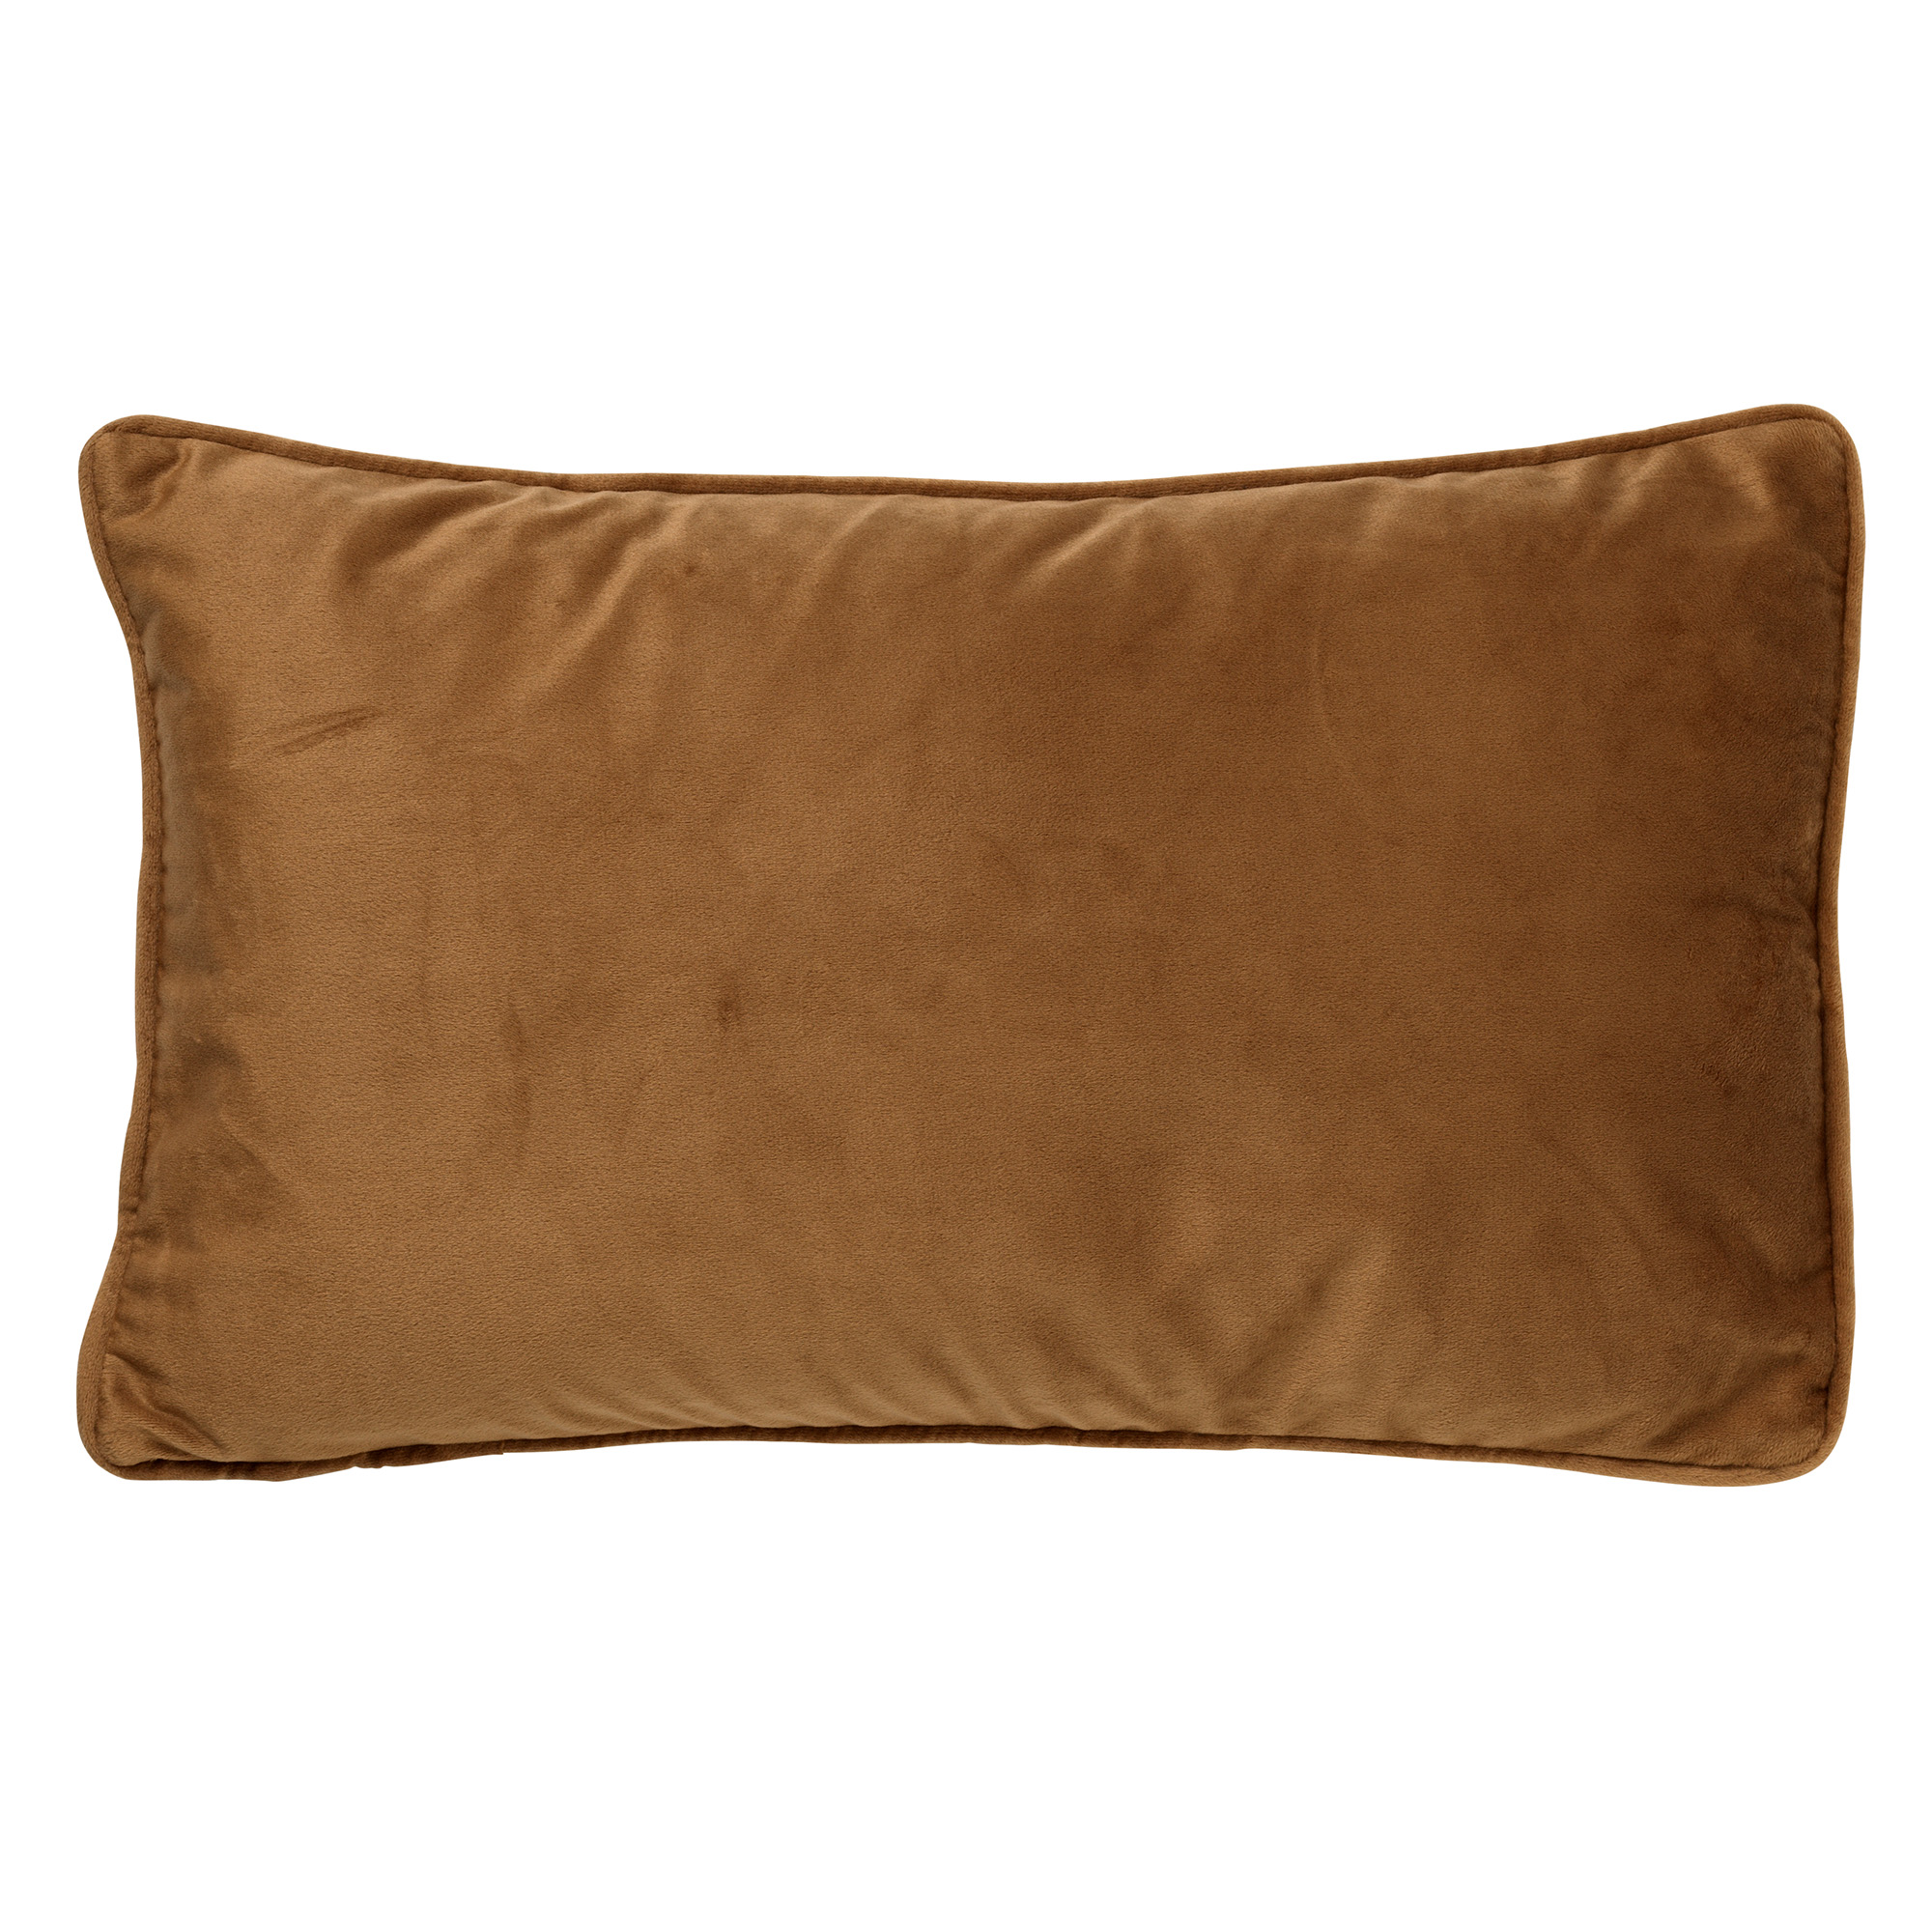 FINN - Kussenhoes velvet Tobacco Brown 30x50 cm